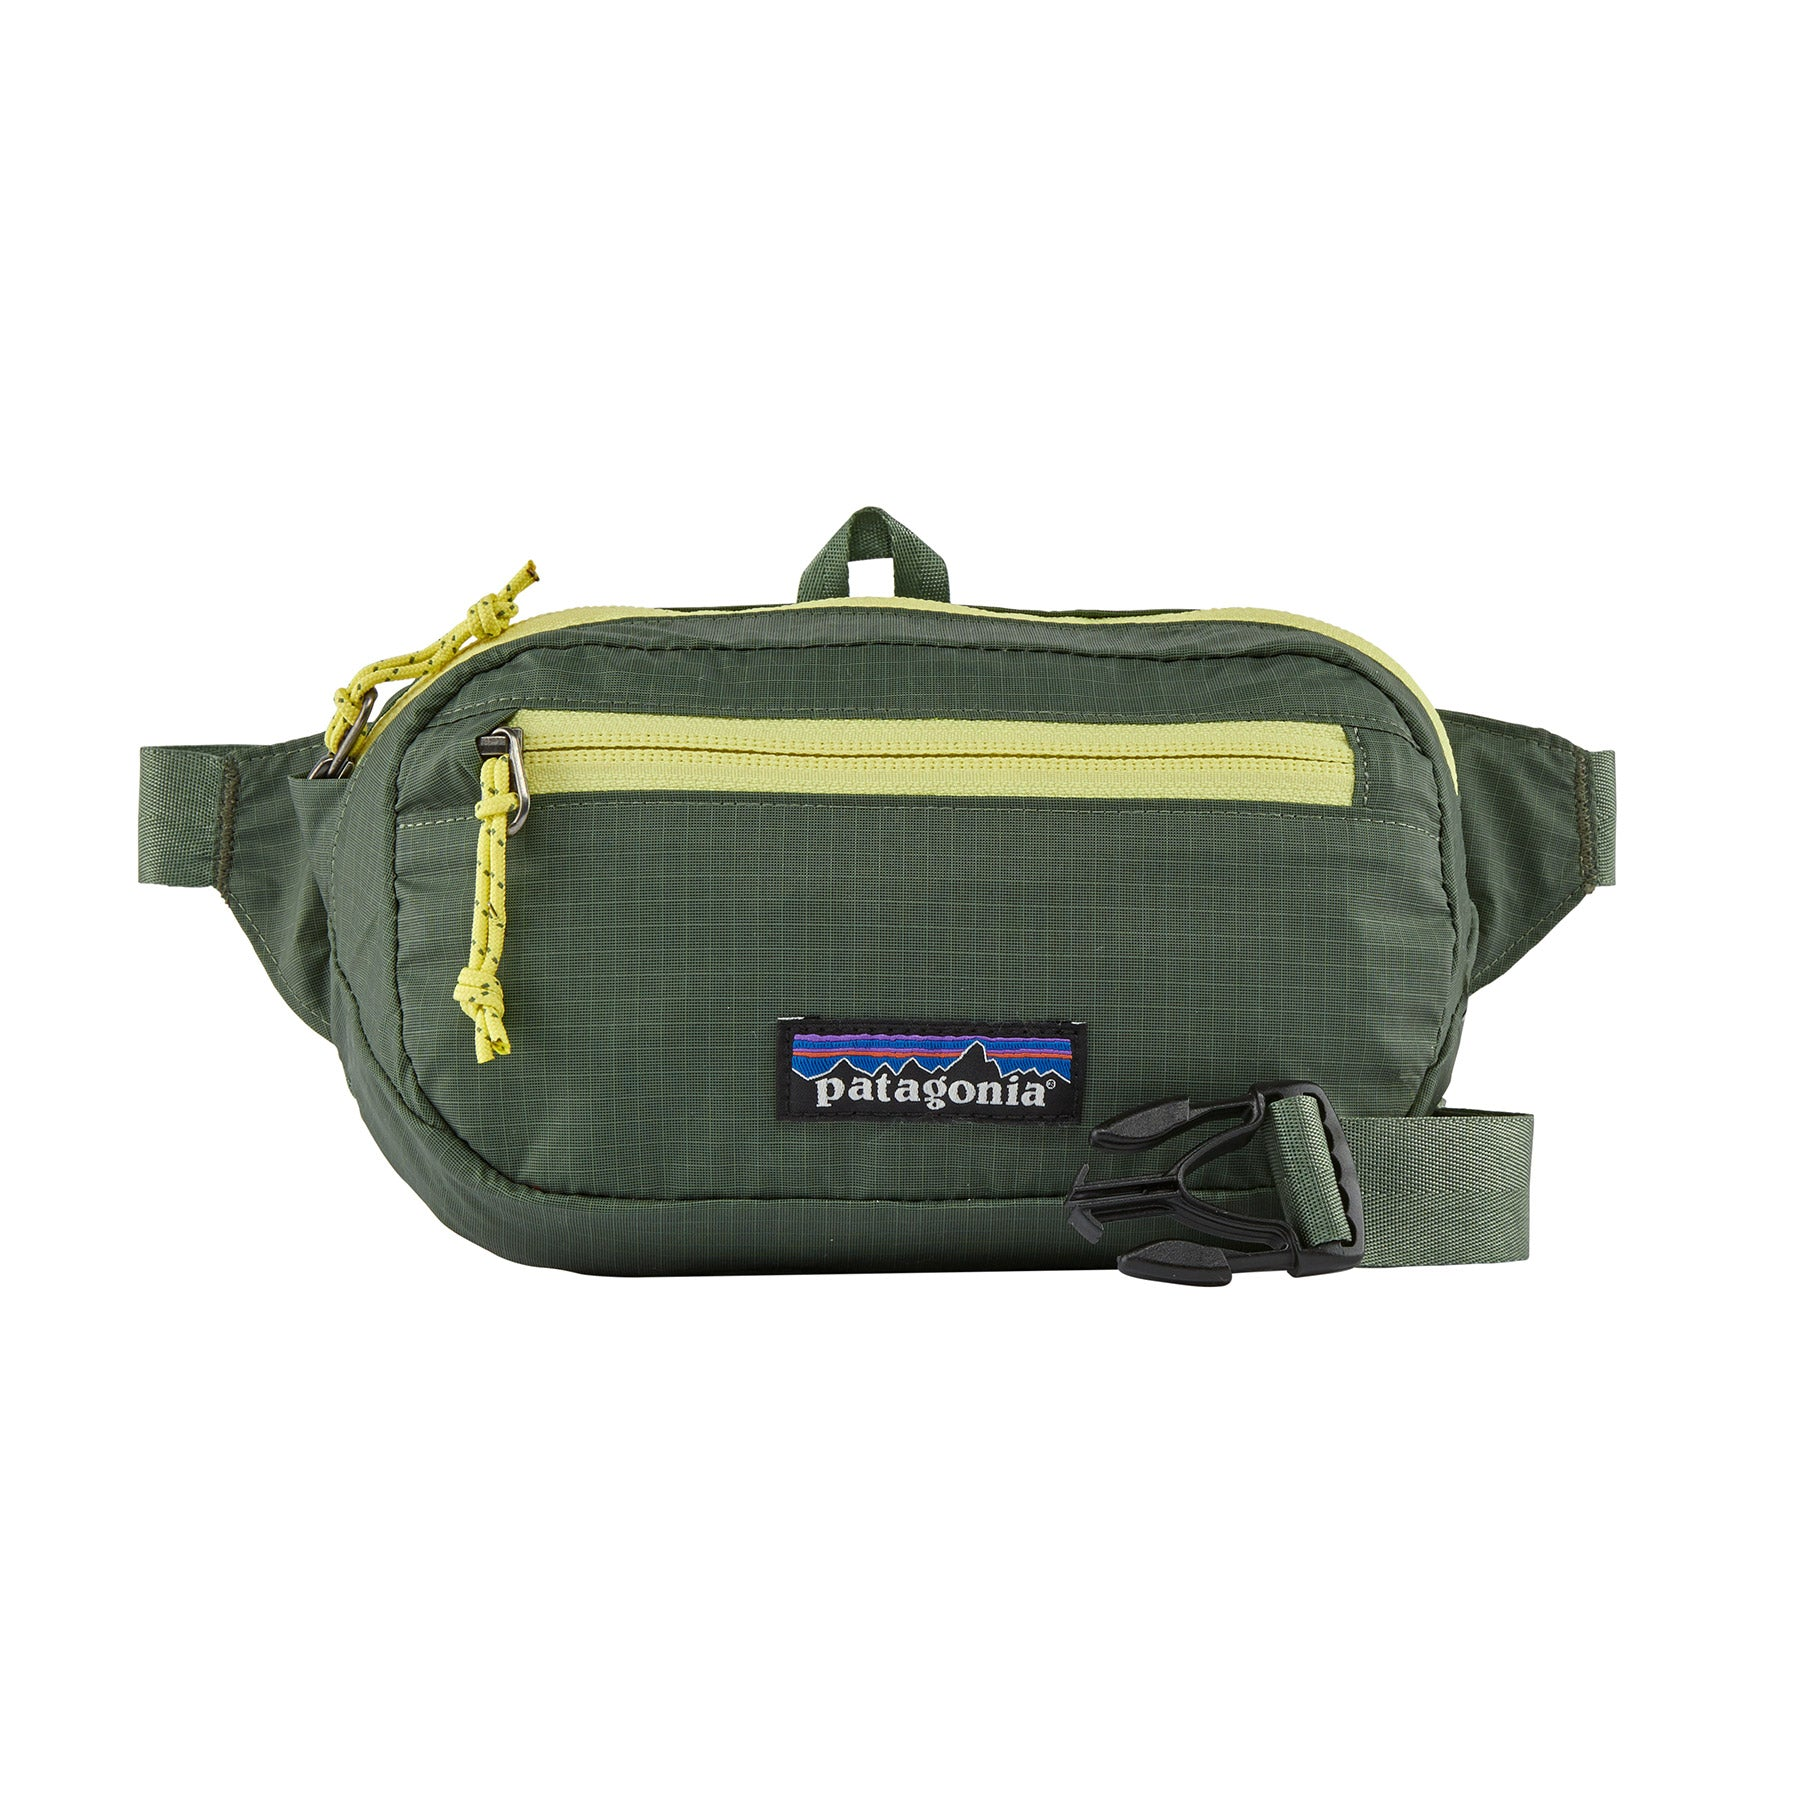 ultralight hip pack in green with yellow zippers